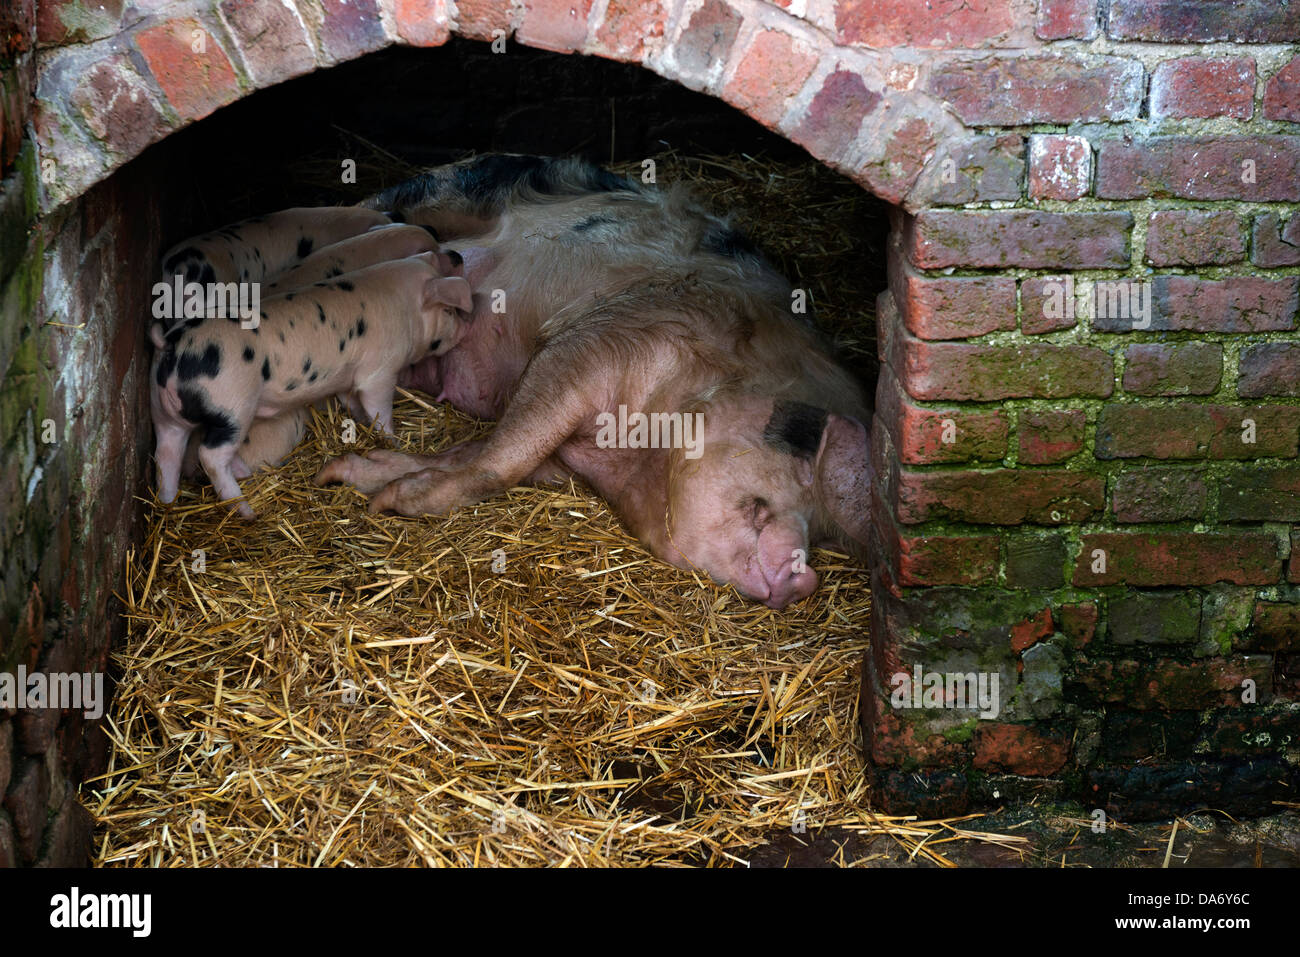 Pig with piglets. Acton Scott historic working farm - Stock Image